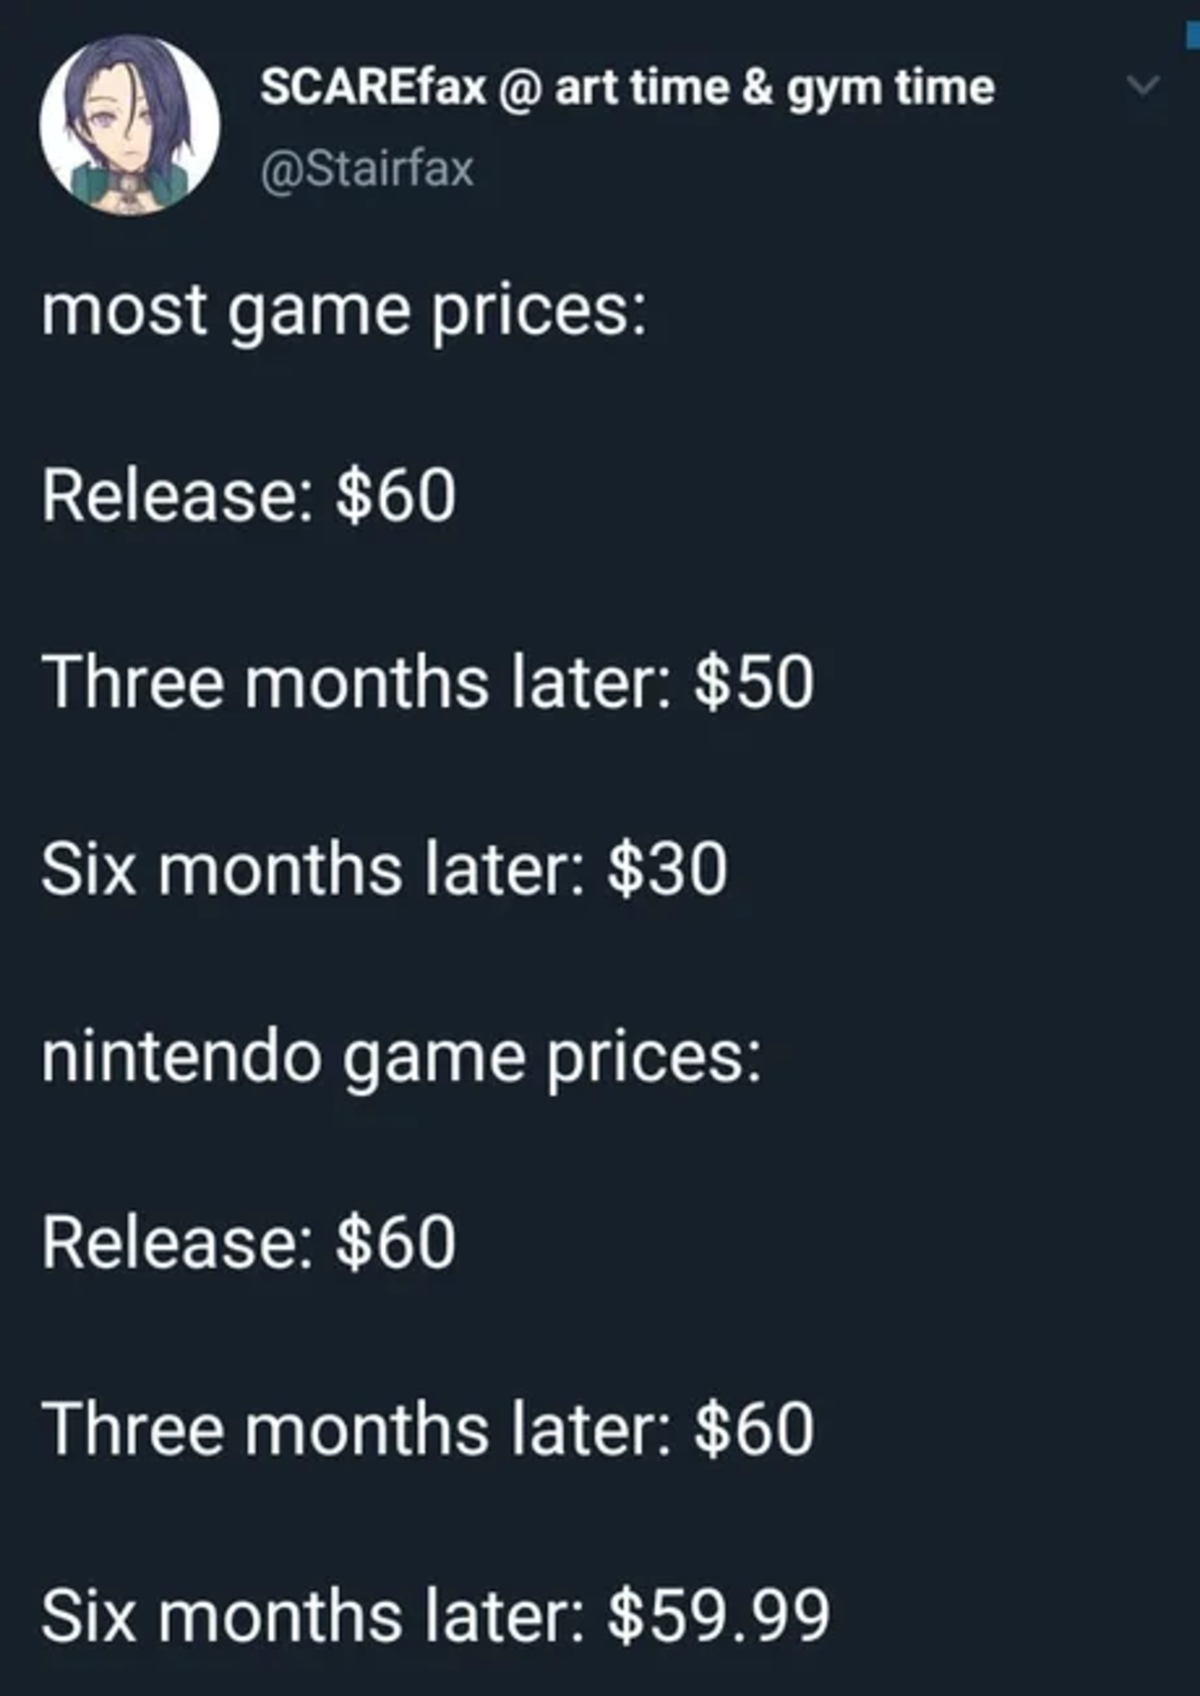 Most games prices. .. I'm still waiting for Tomb Raider and Nier Automata to go on sale and I'm starting to lose my patience and pirating them